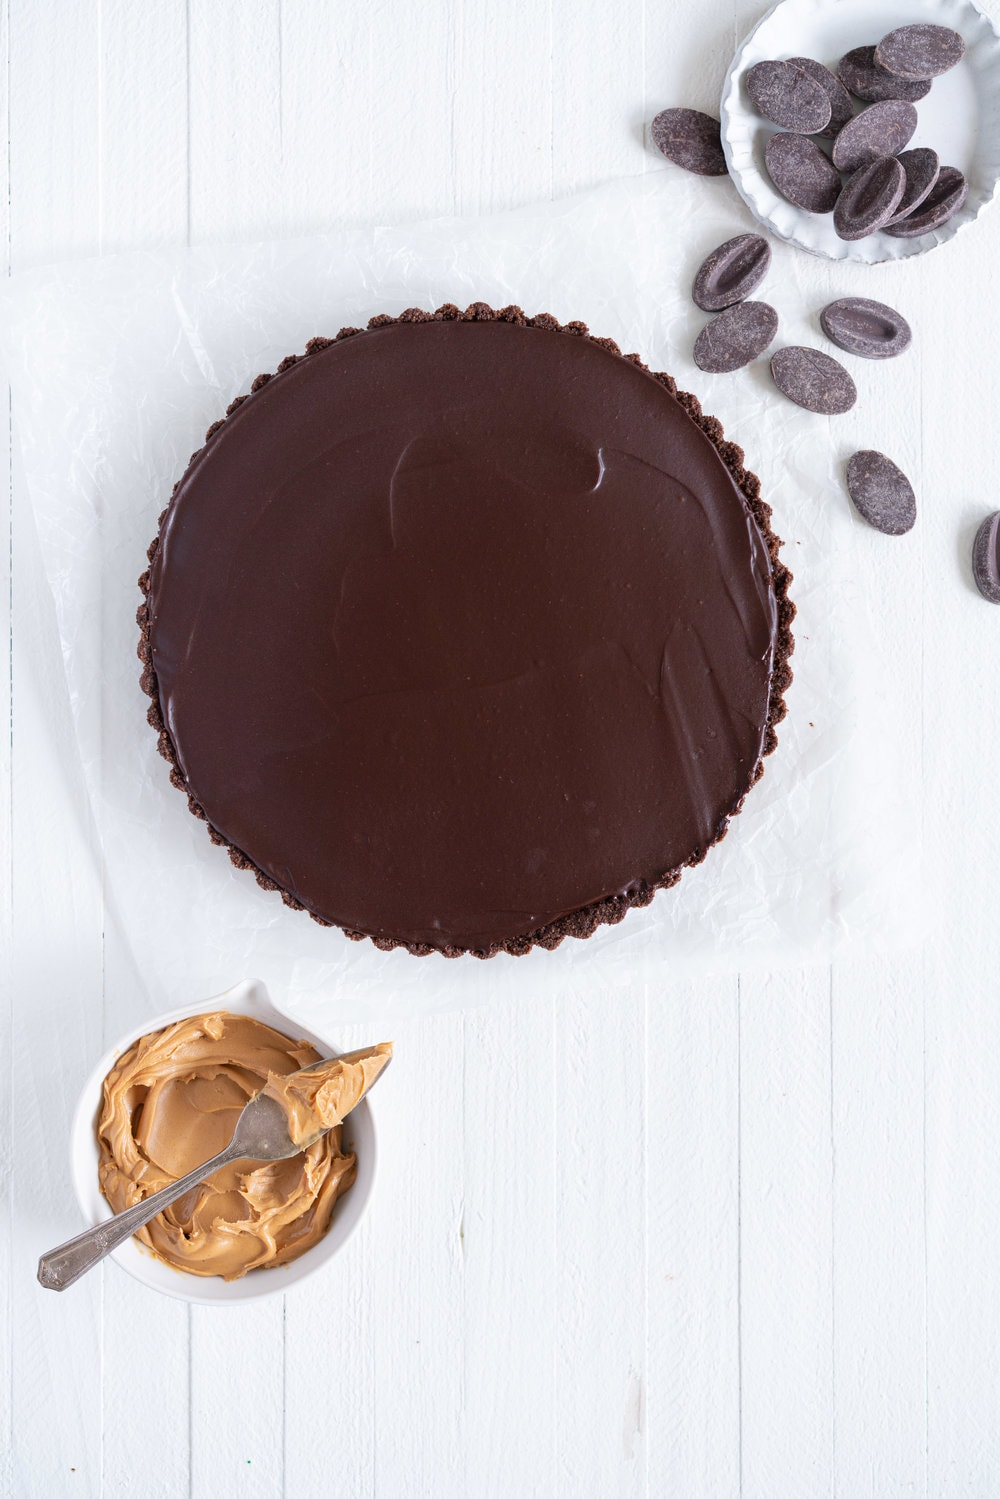 Dark Chocolate Peanut Butter Tart with Peanut Butter Whipped Cream - a chocolate graham cracker crust is topped with a silky dark chocolate peanut butter filling and finished with a creamy peanut butter whipped cream. Everyone needs a recipe like this up their sleeve to wow their friends. Easy to make ahead, and always a crowd pleaser. #chocolatetart #peanutbuttertart #chocolate #peanutbutter